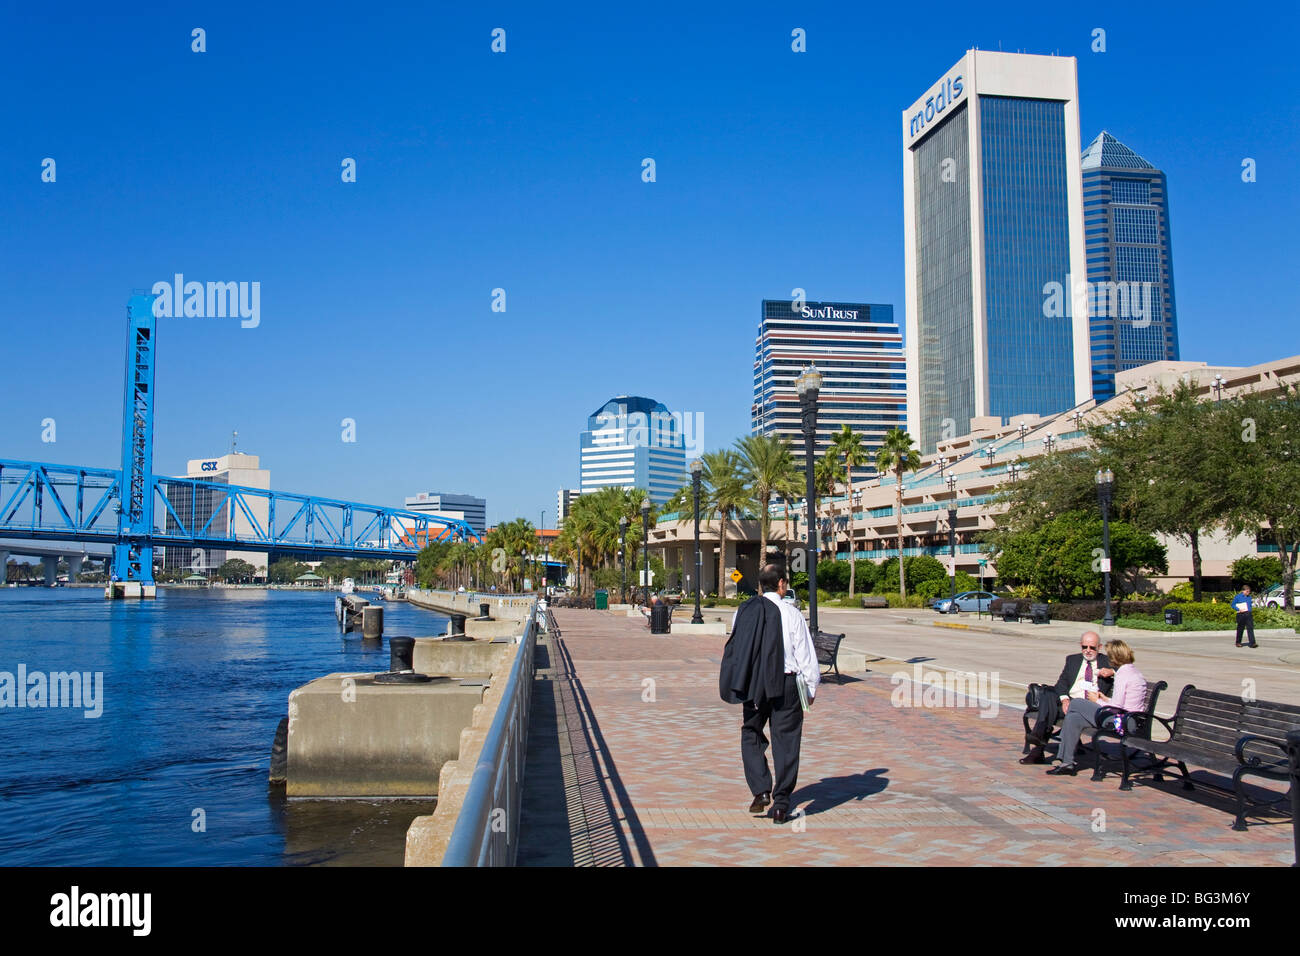 Jacksonville Riverfront, Florida, United States of America, North America - Stock Image